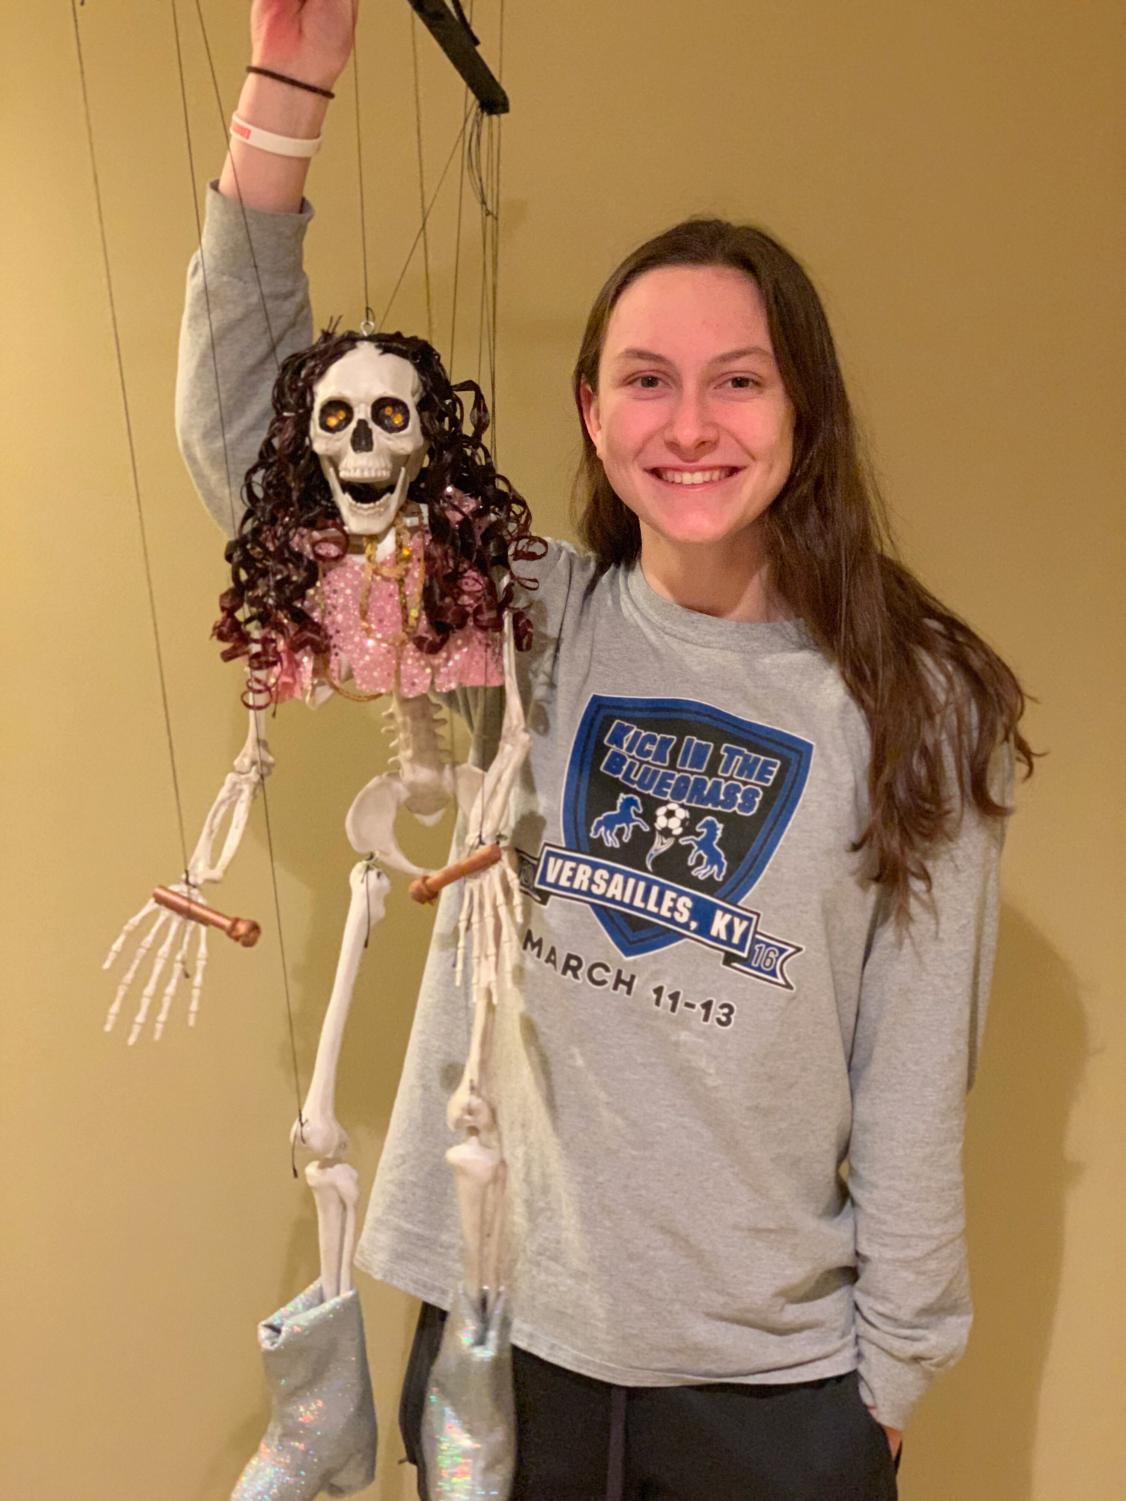 Senior Jordan Cox poses with one of the puppets that is used in performances at Peewinkle's Puppet Studio. Cox personally hand-made the puppet shown.